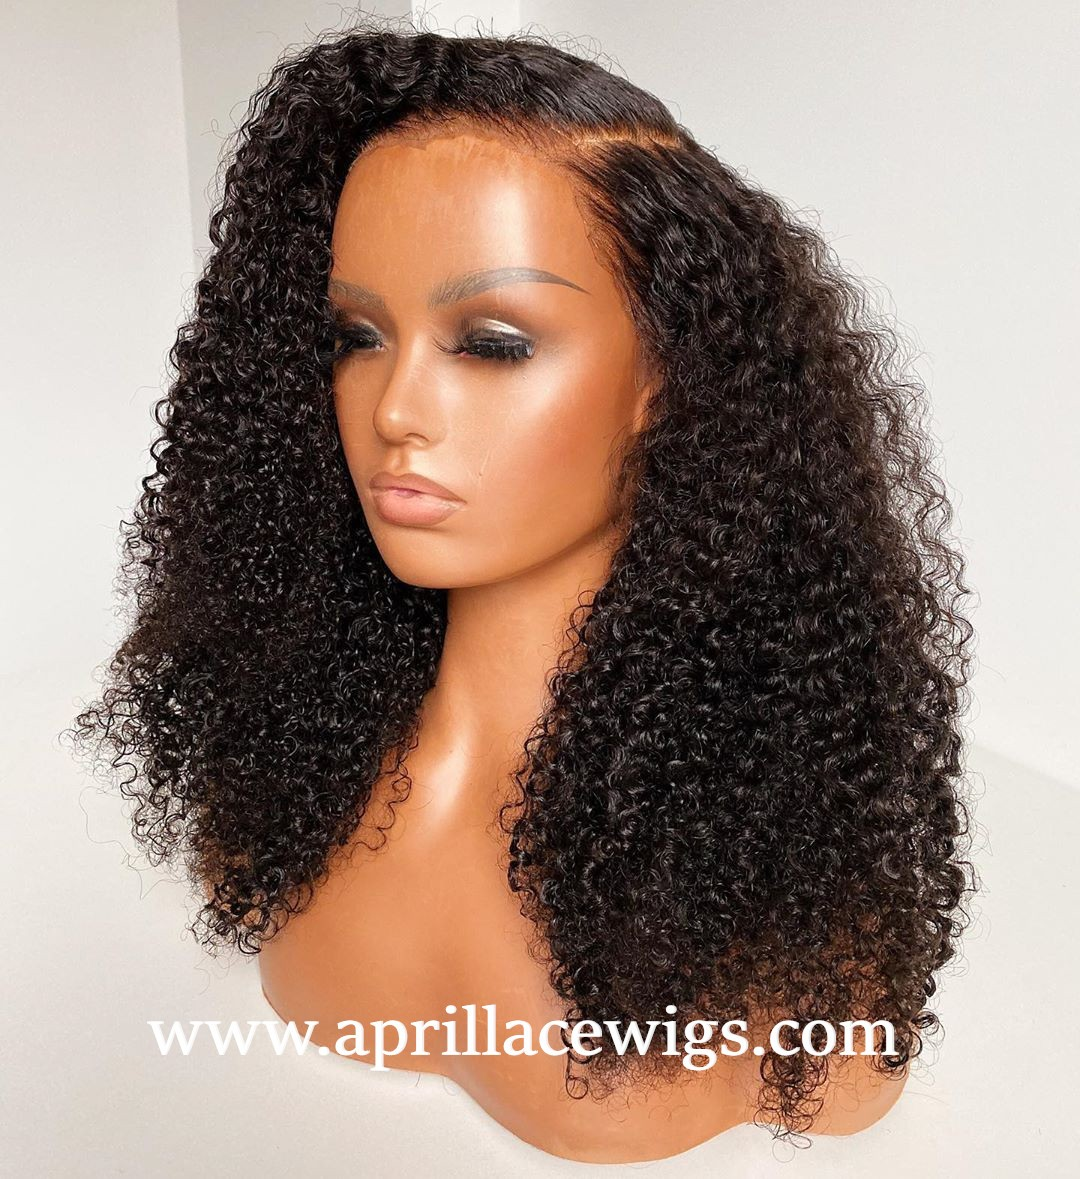 virgin human hair tight deep curly 360 wig mimic african american hair